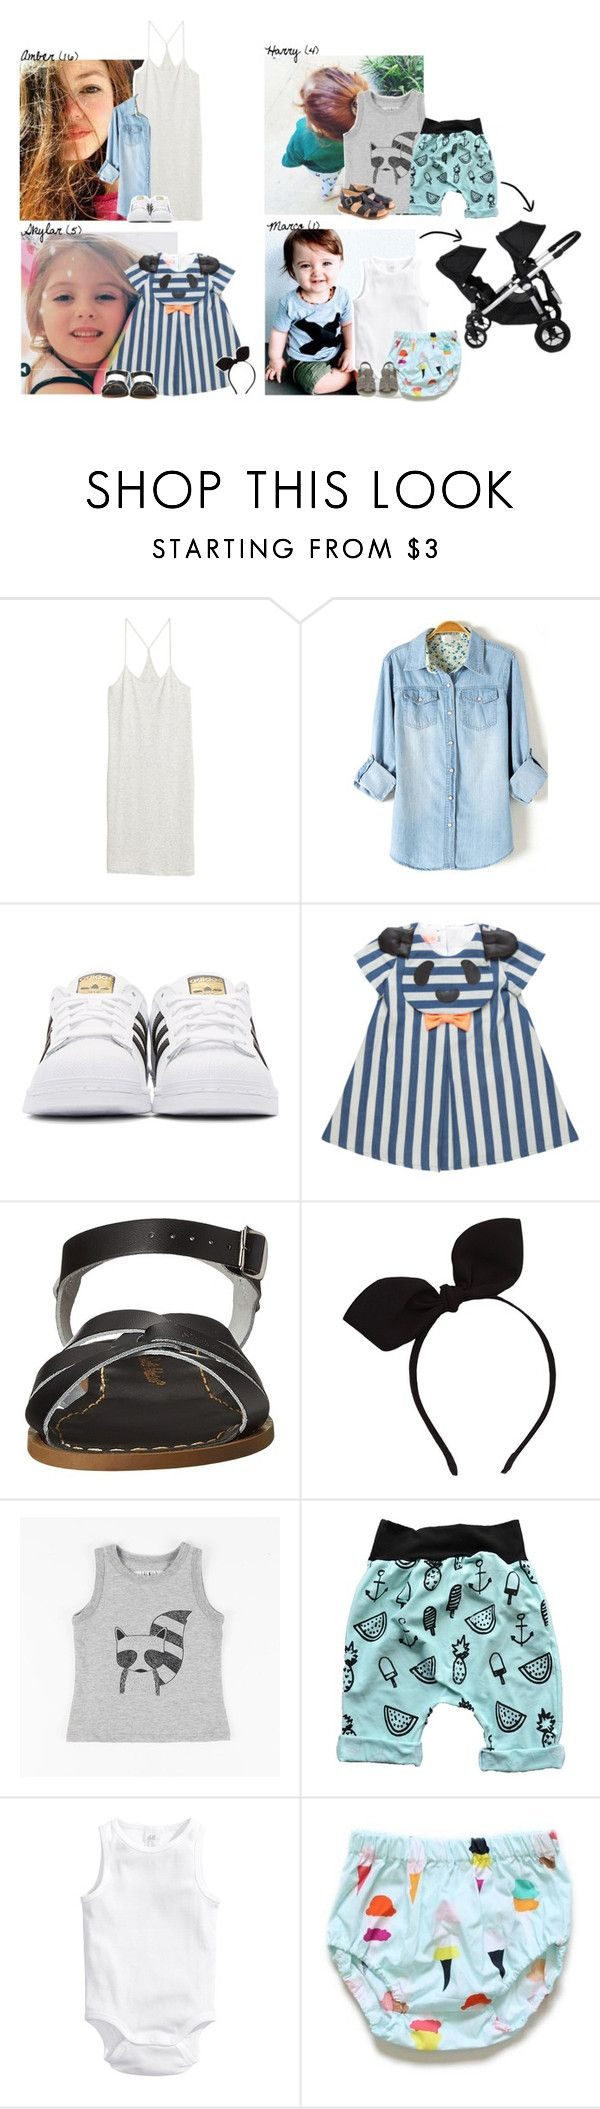 """""""Around the City and Shopping //Boaventura Family// December 29th, 2016"""" by crazyhat15 ❤ liked on Polyvore featuring H&M, adidas Originals, Salt Water Sandals, Bonpoint, Baby Jogger, boaventurafamily and familytripbrazil"""